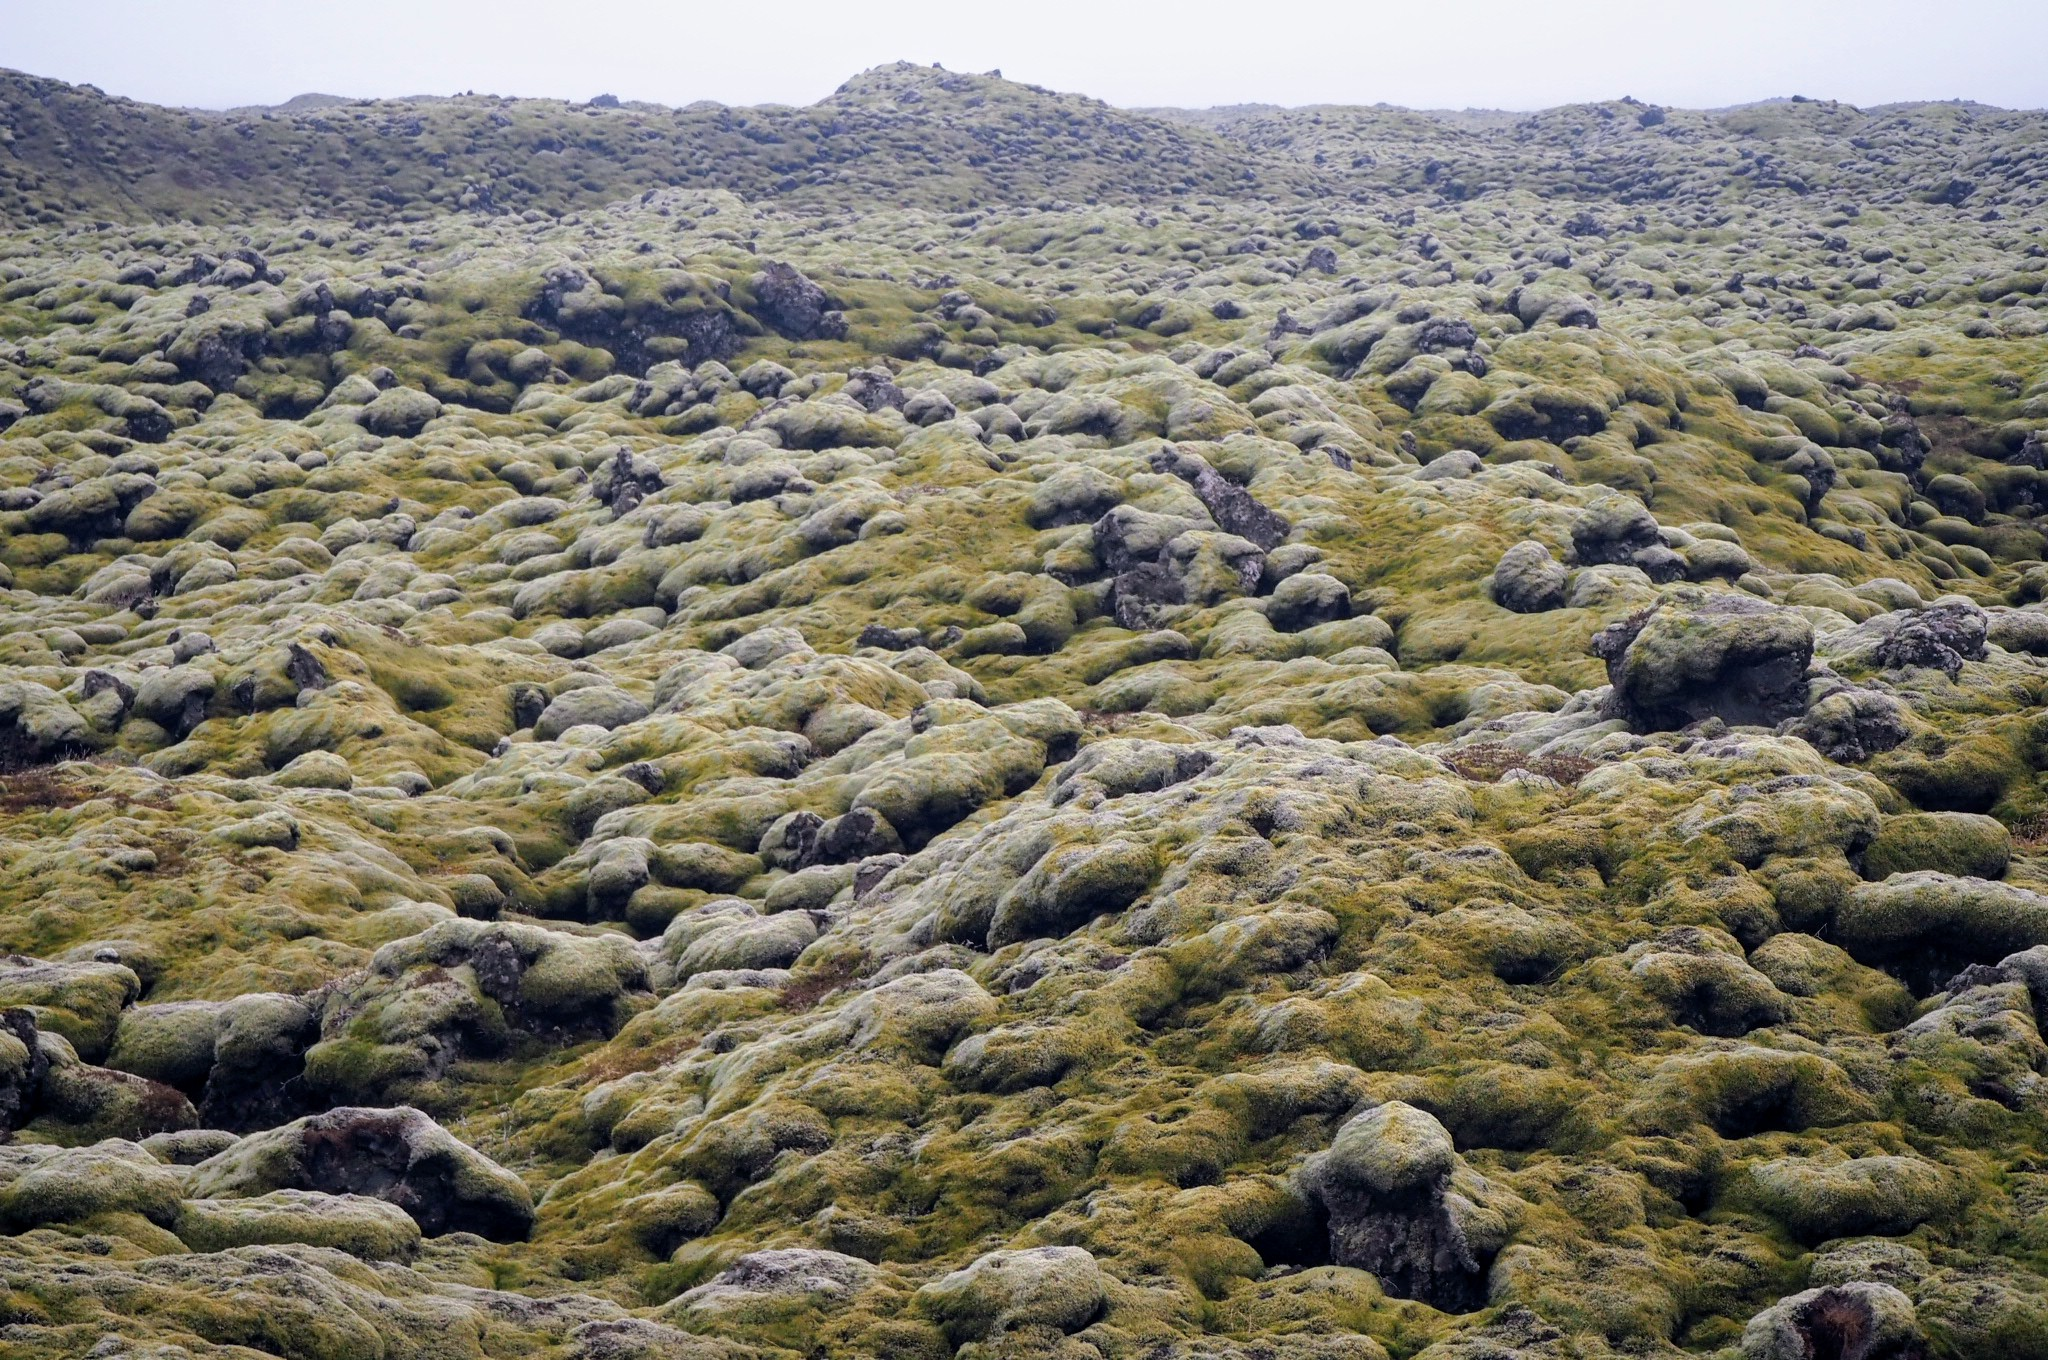 Lava fields covered in moss